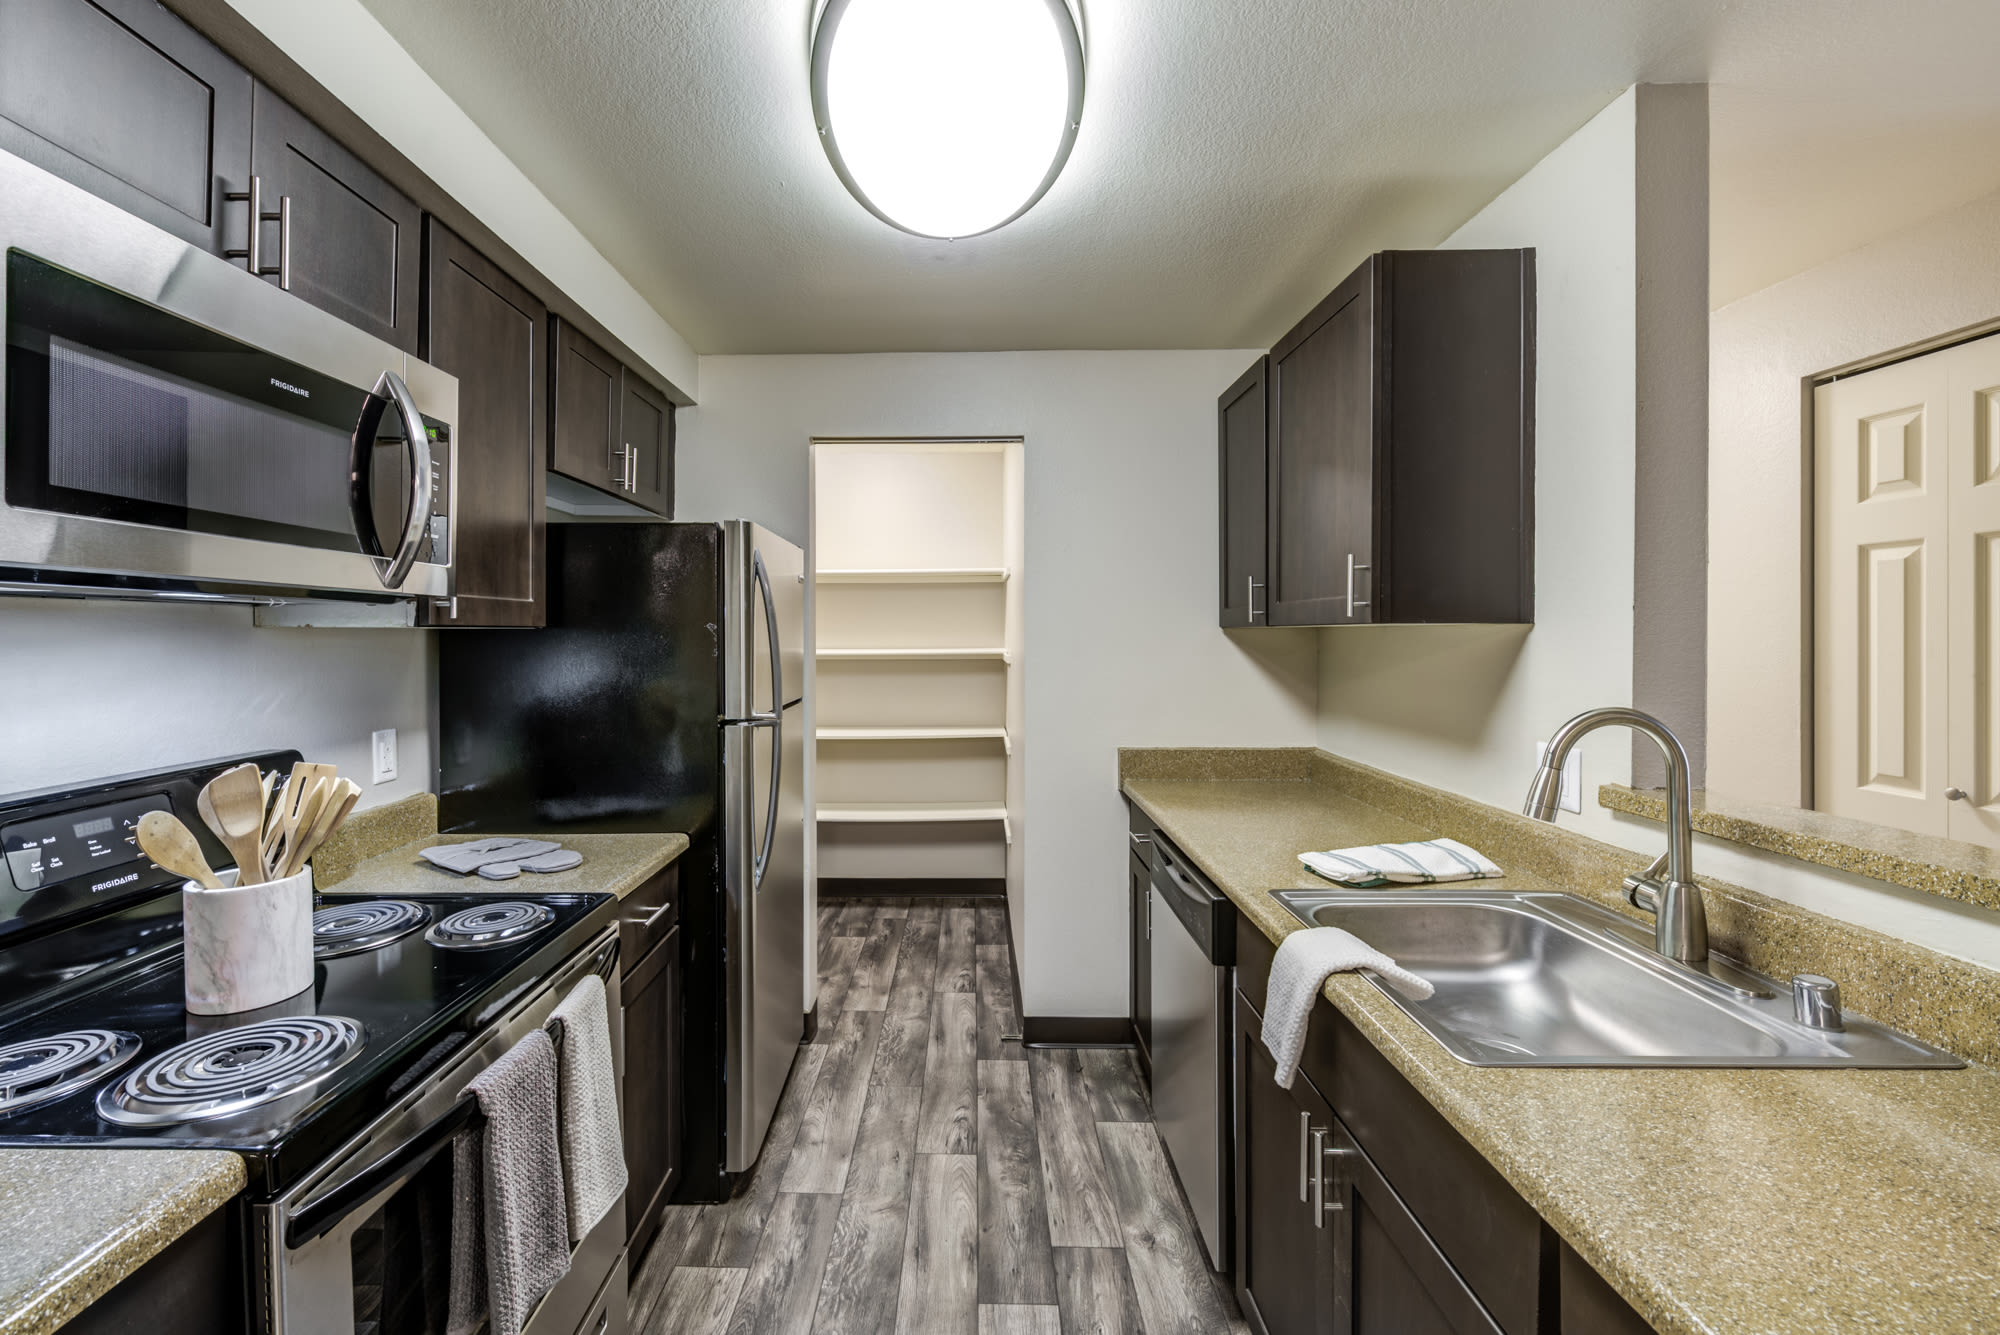 Brown renovated kitchen with stainless steel appliances at Olin Fields Apartments in Everett